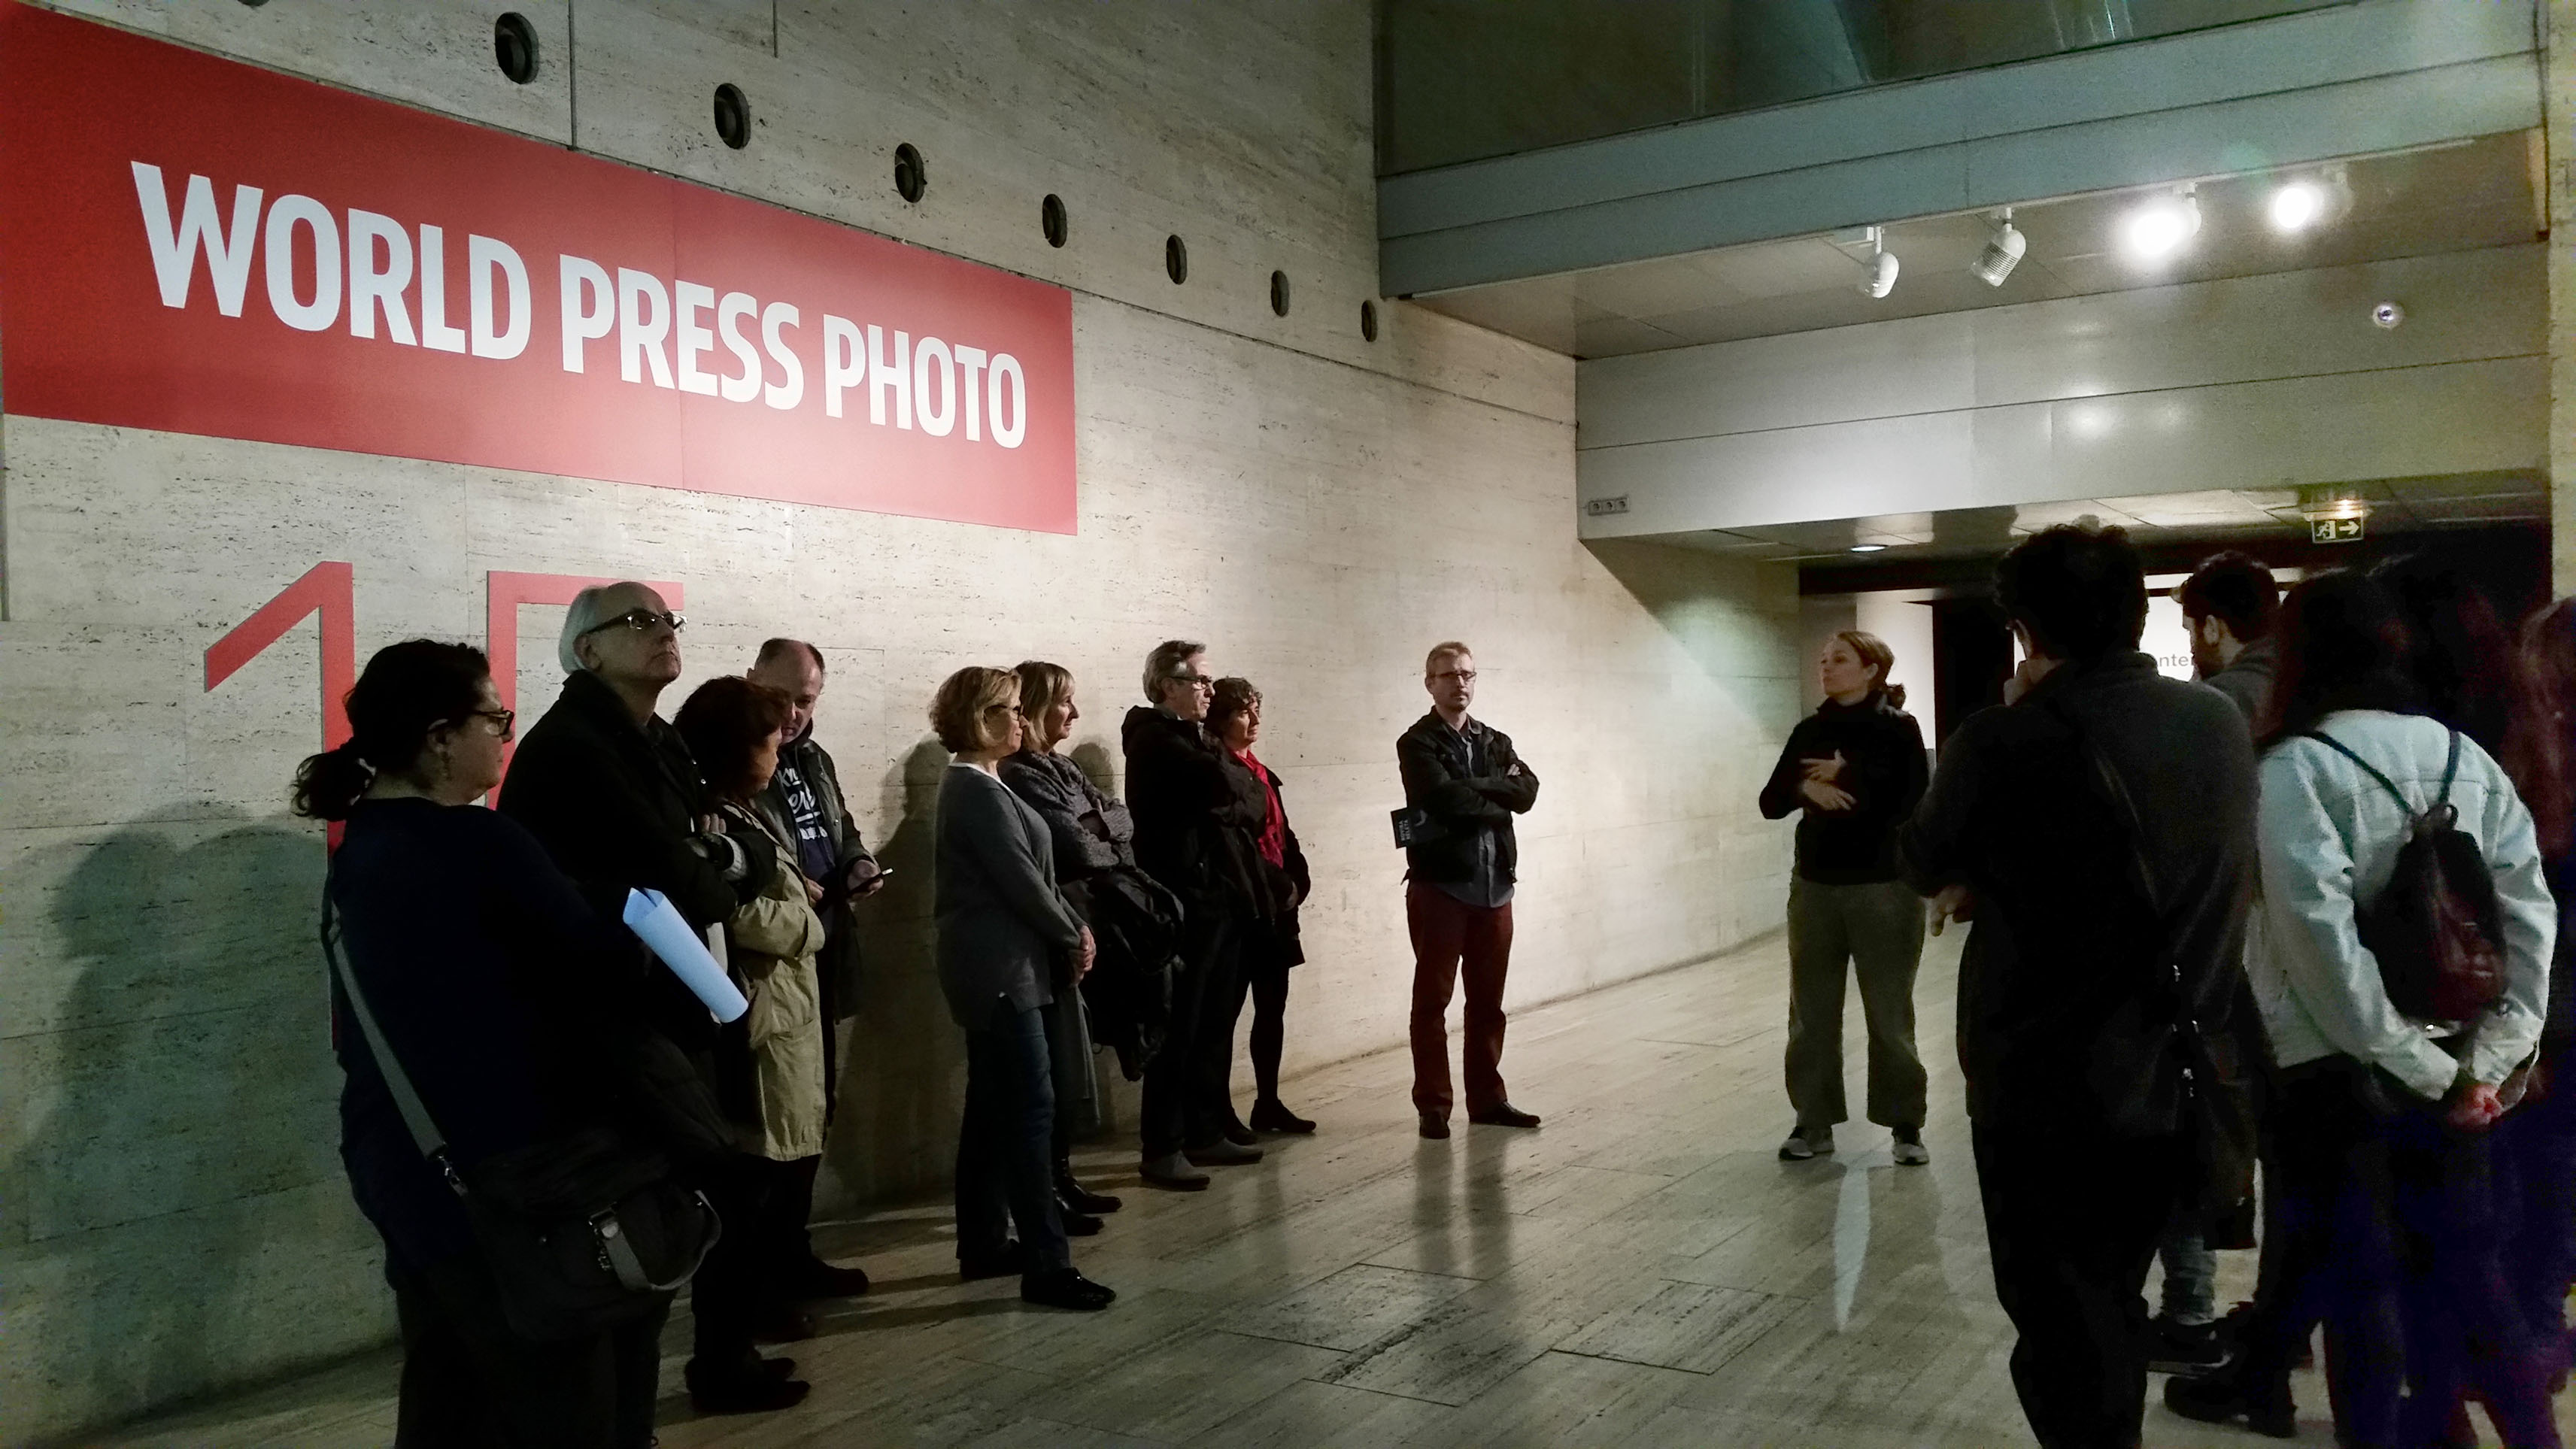 Visita guiada exposició World Press Photo 15 a càrrec de Sílvia Omedes. 24/11/15 CCCB